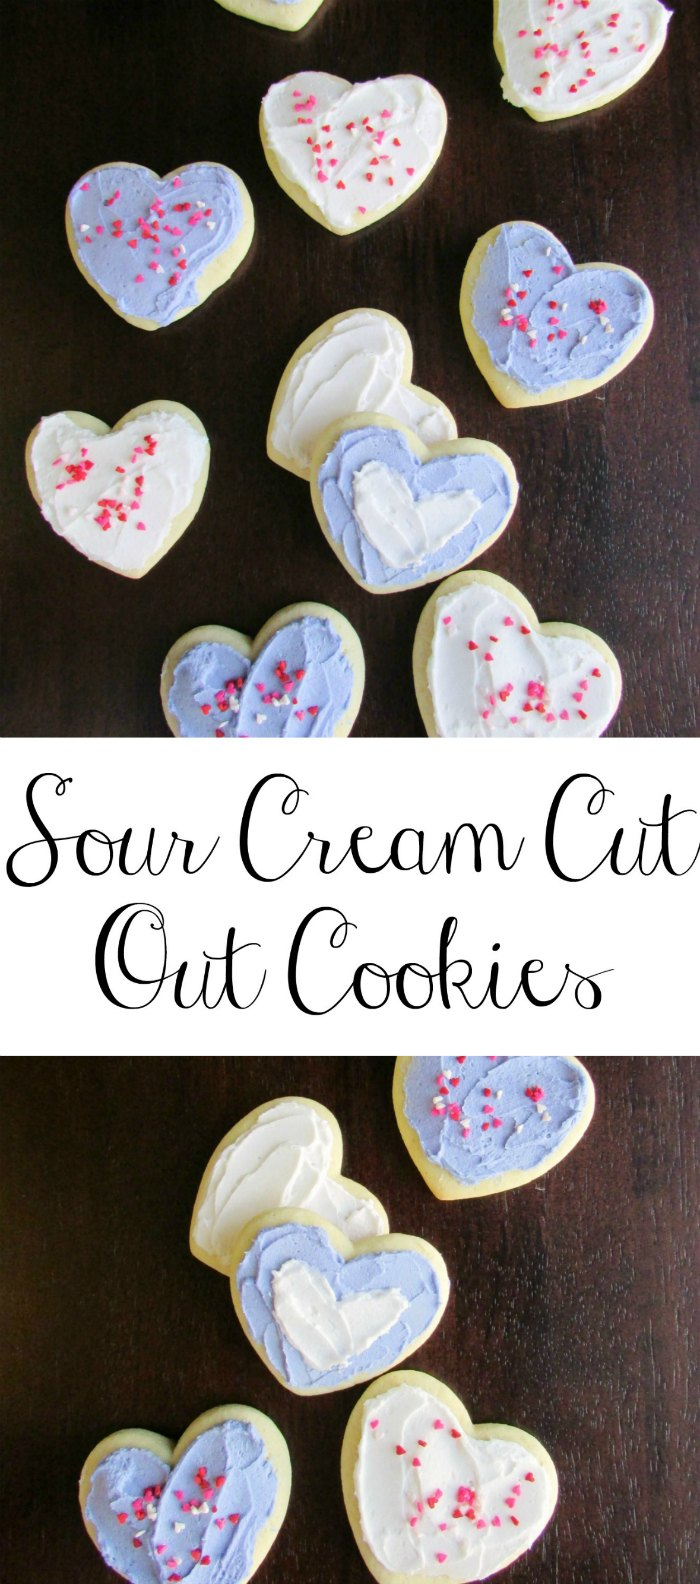 These sour cream cookies are a long time family favorite recipe.  They are soft, flavorful and perfect as drop cookies or cut outs.